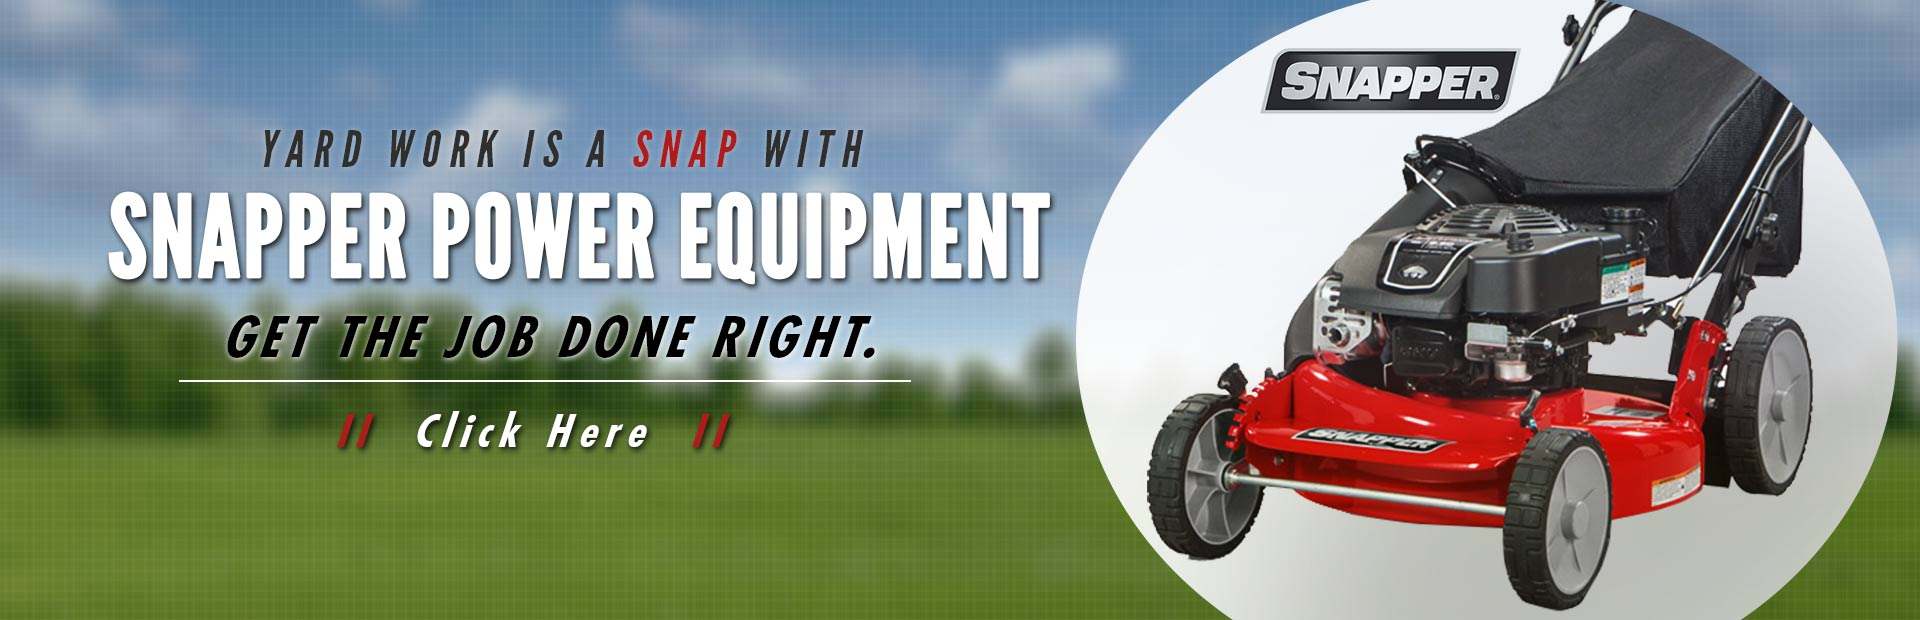 Home Ray's Bike and Mower, Inc  Mundelein, IL (847) 826-3215